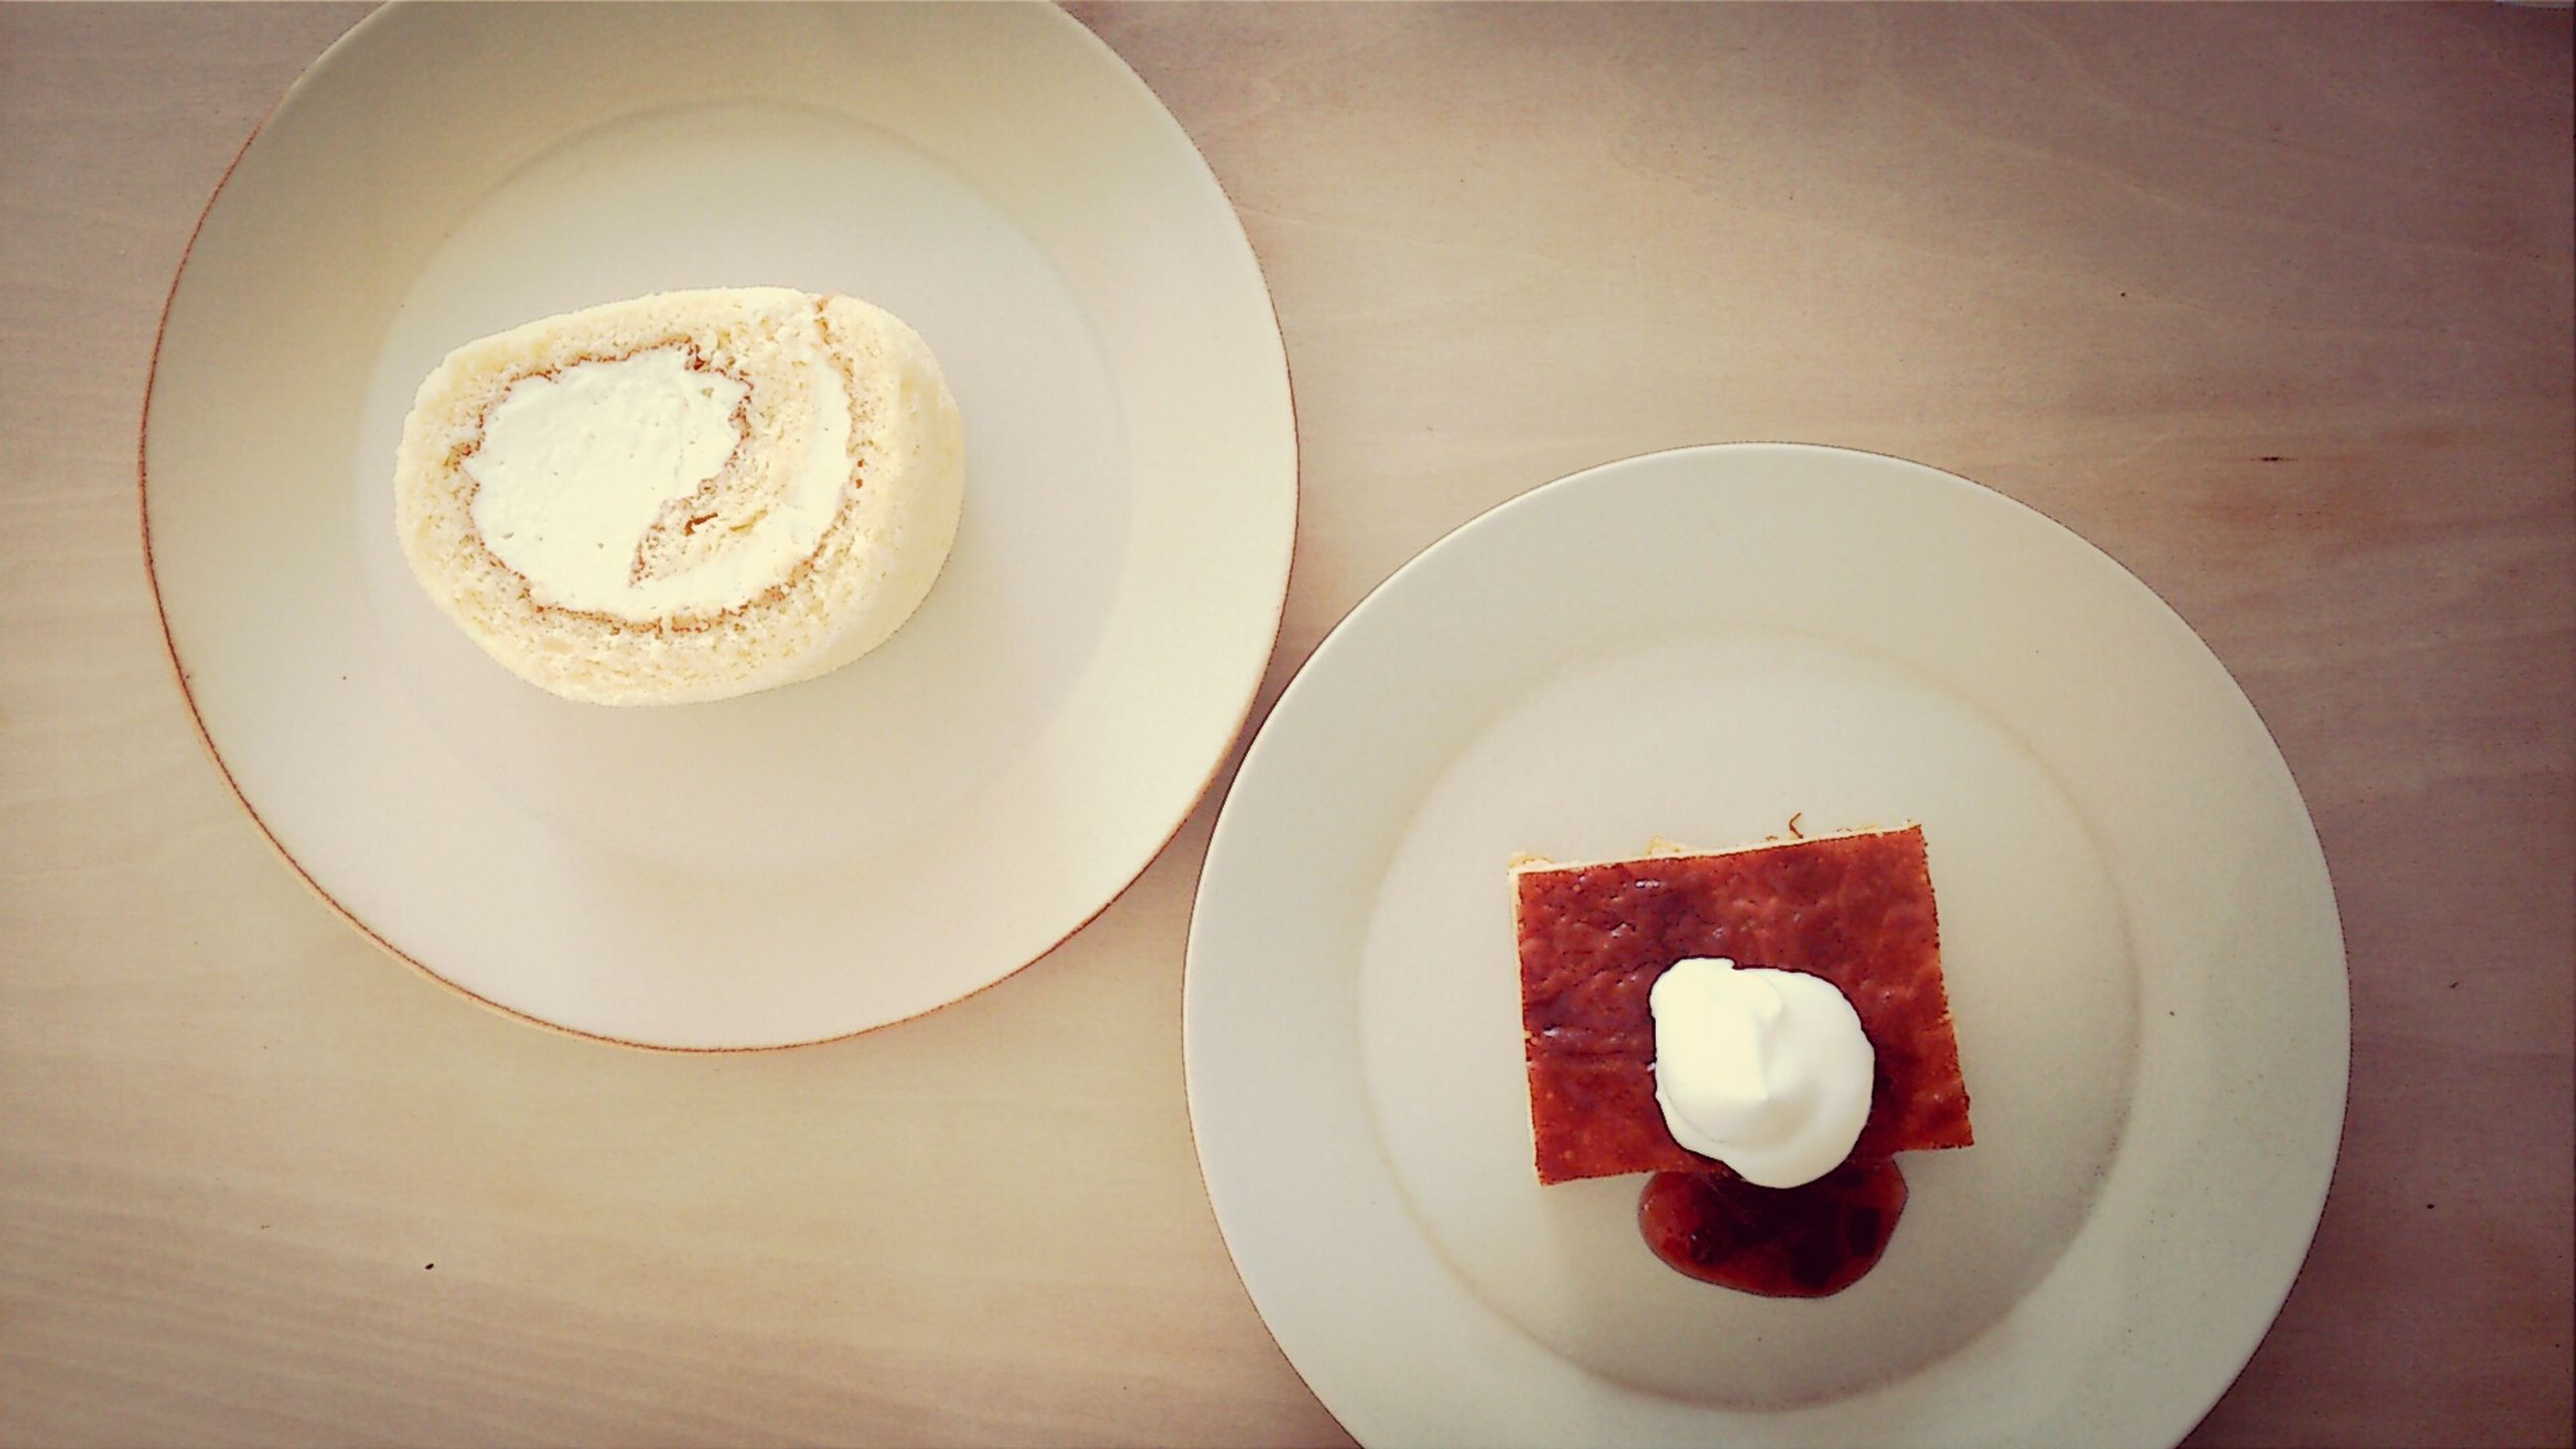 indoors, food and drink, still life, high angle view, food, directly above, plate, table, sweet food, circle, close-up, no people, white color, heart shape, geometric shape, indulgence, dessert, cake, pattern, shape